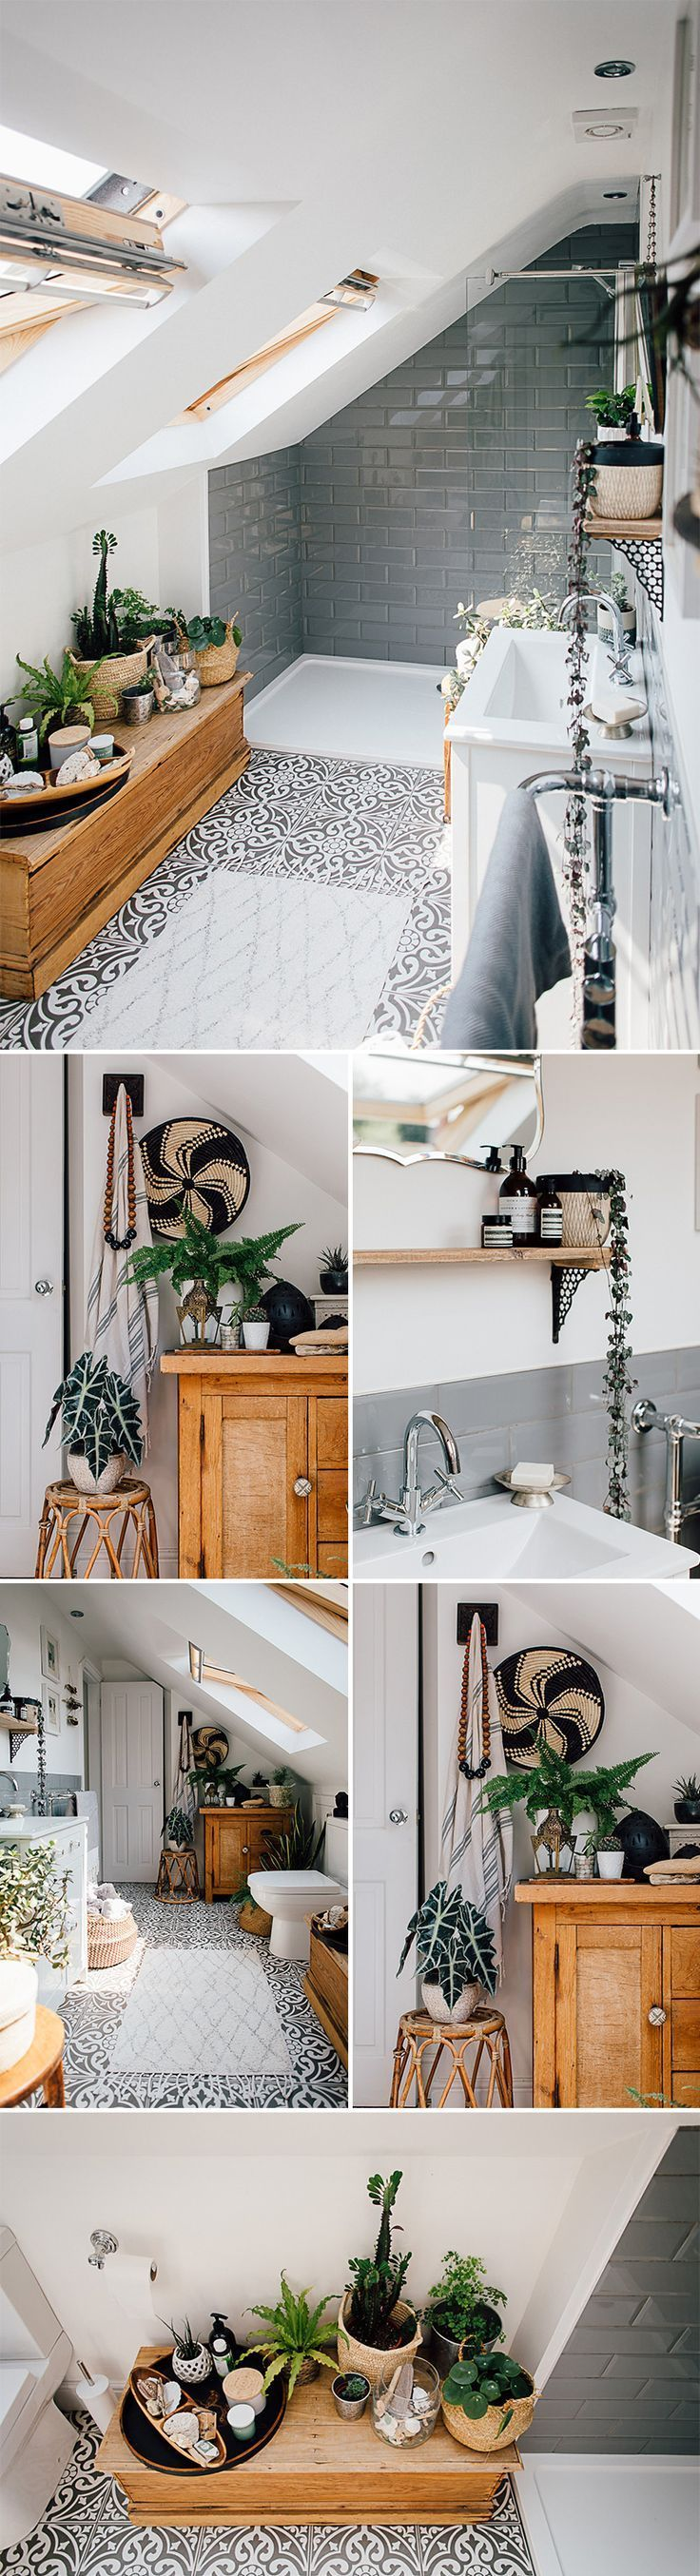 Global Inspired Home Tour {Upstairs